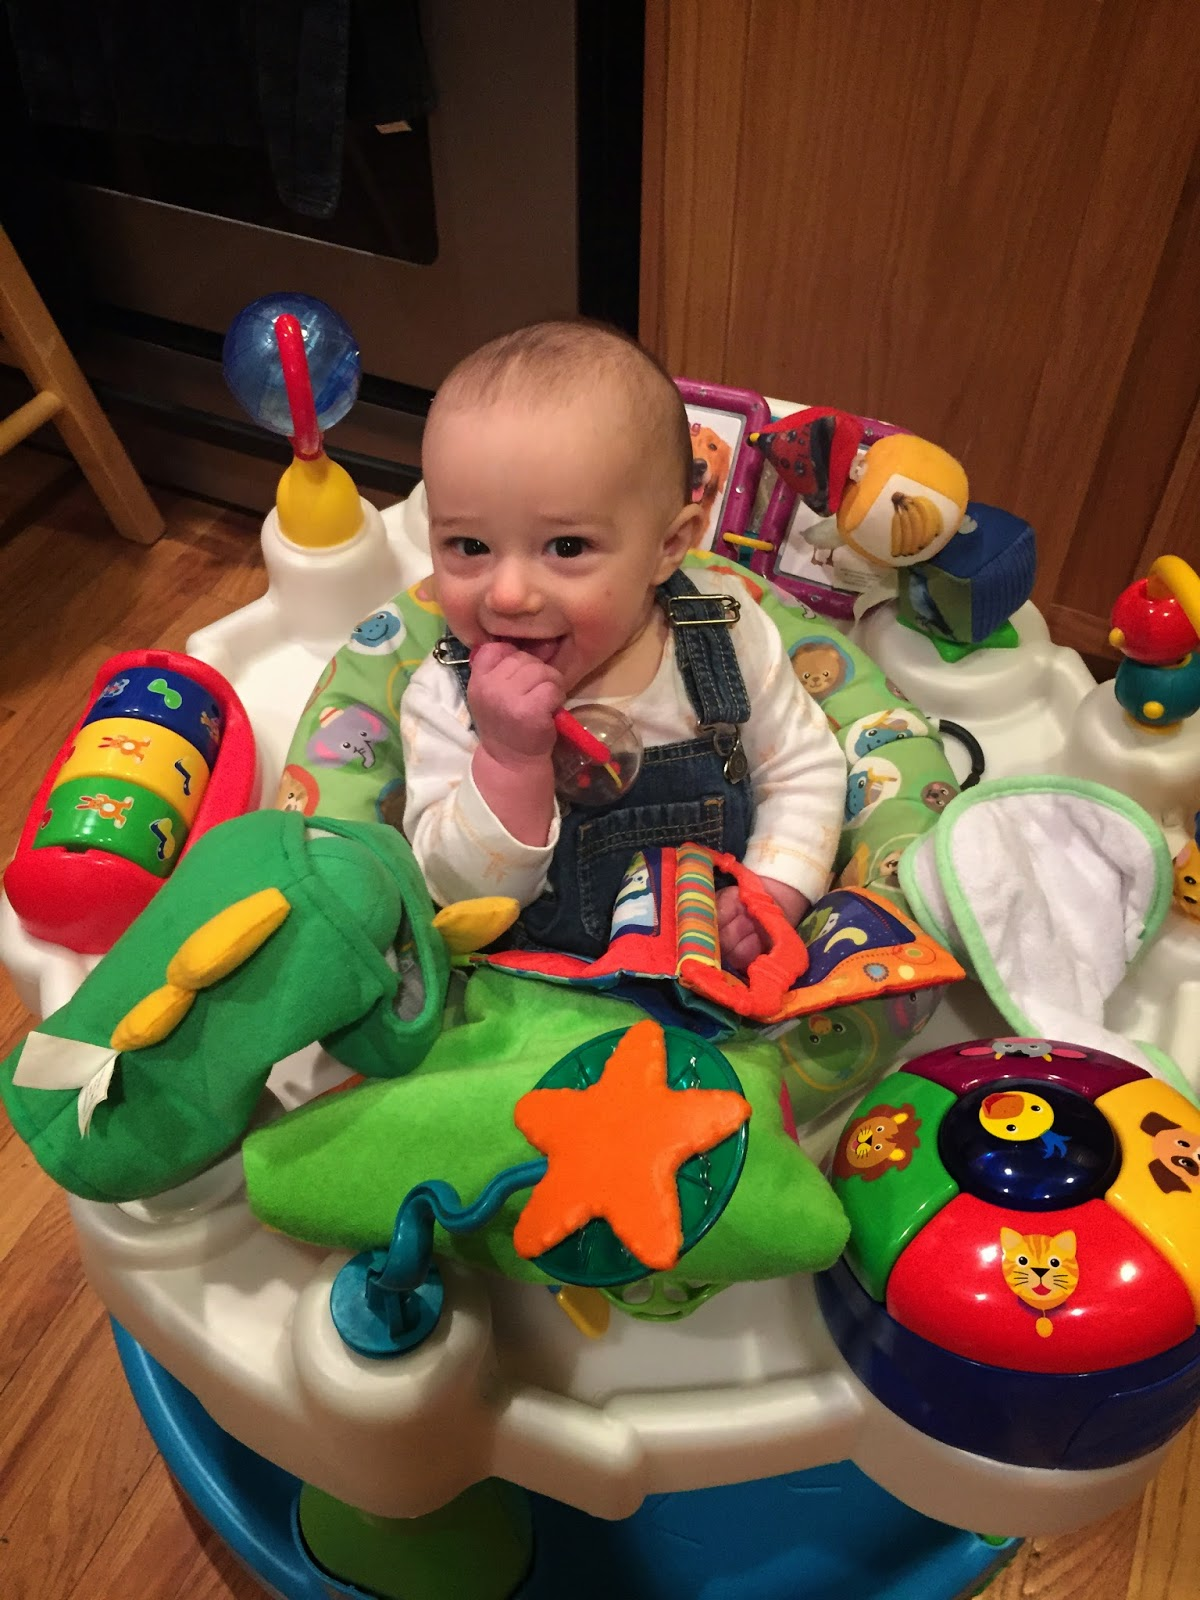 Baby in exersaucer